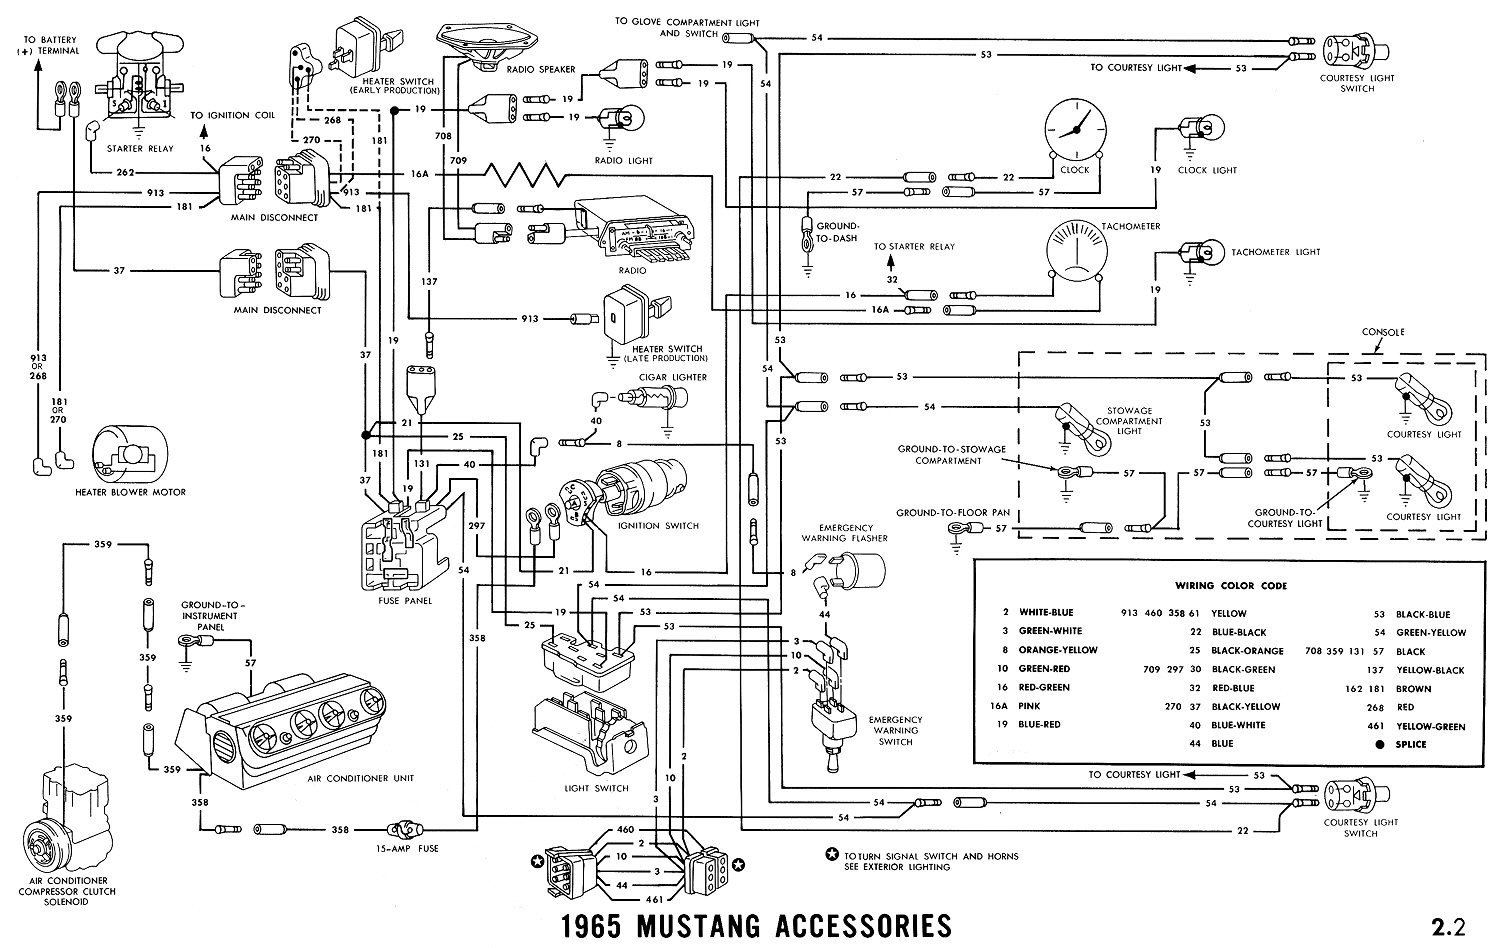 1965i 1965 mustang wiring diagrams average joe restoration best wiring harness for 1967 mustang at soozxer.org